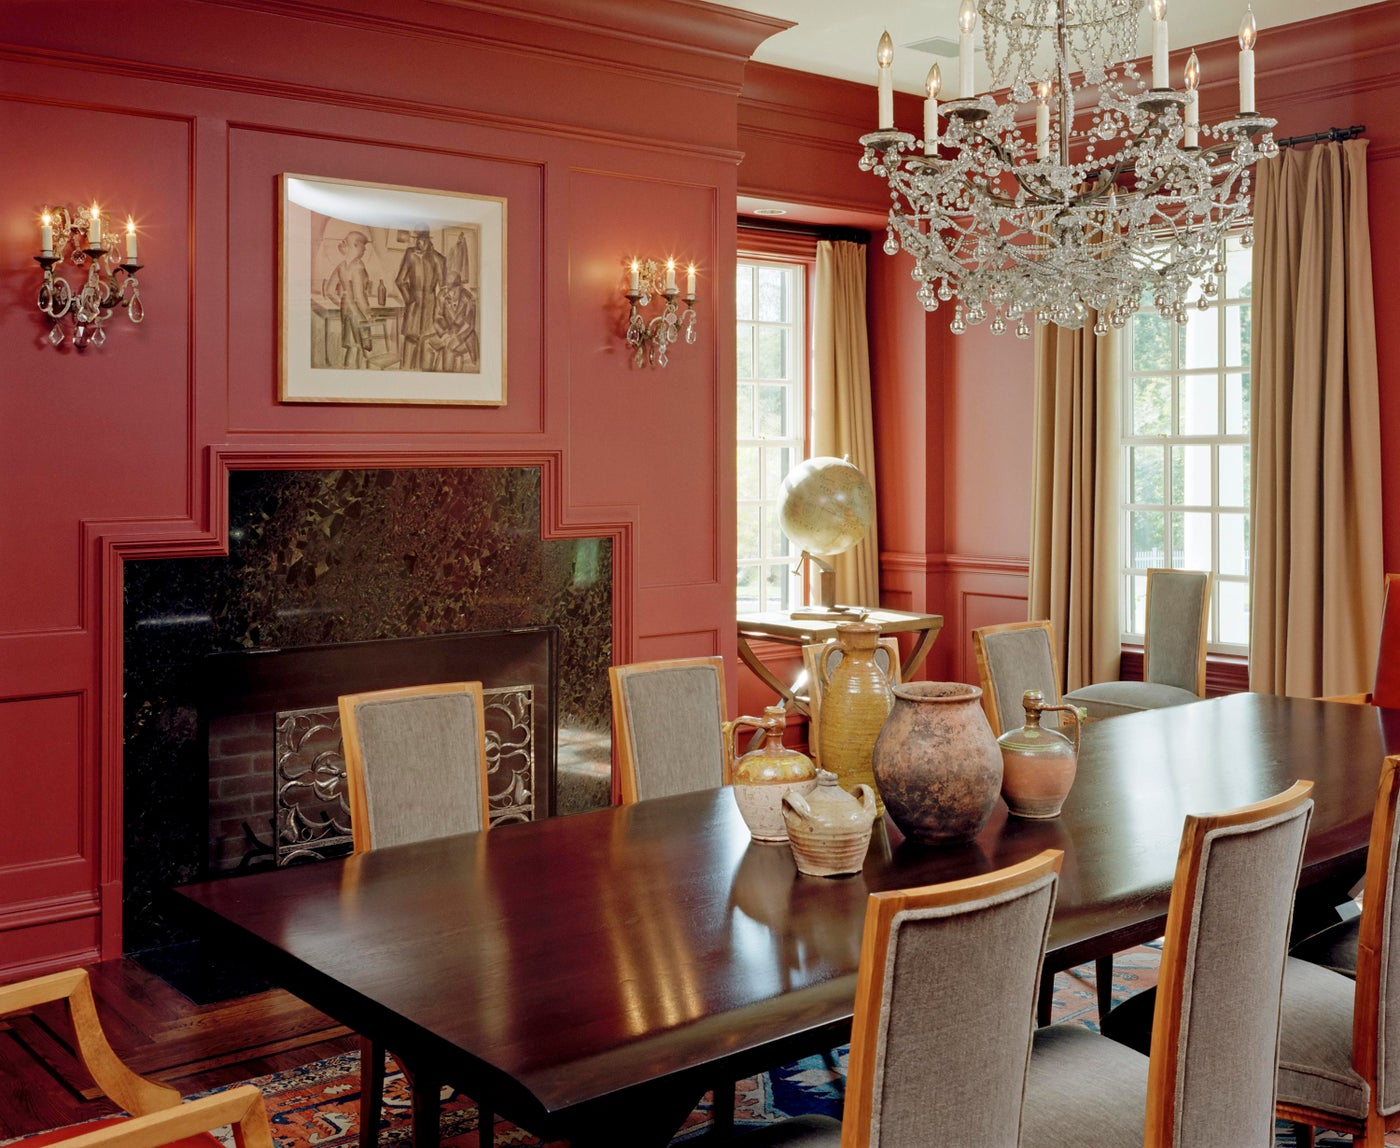 Dining room with dramatic red walls